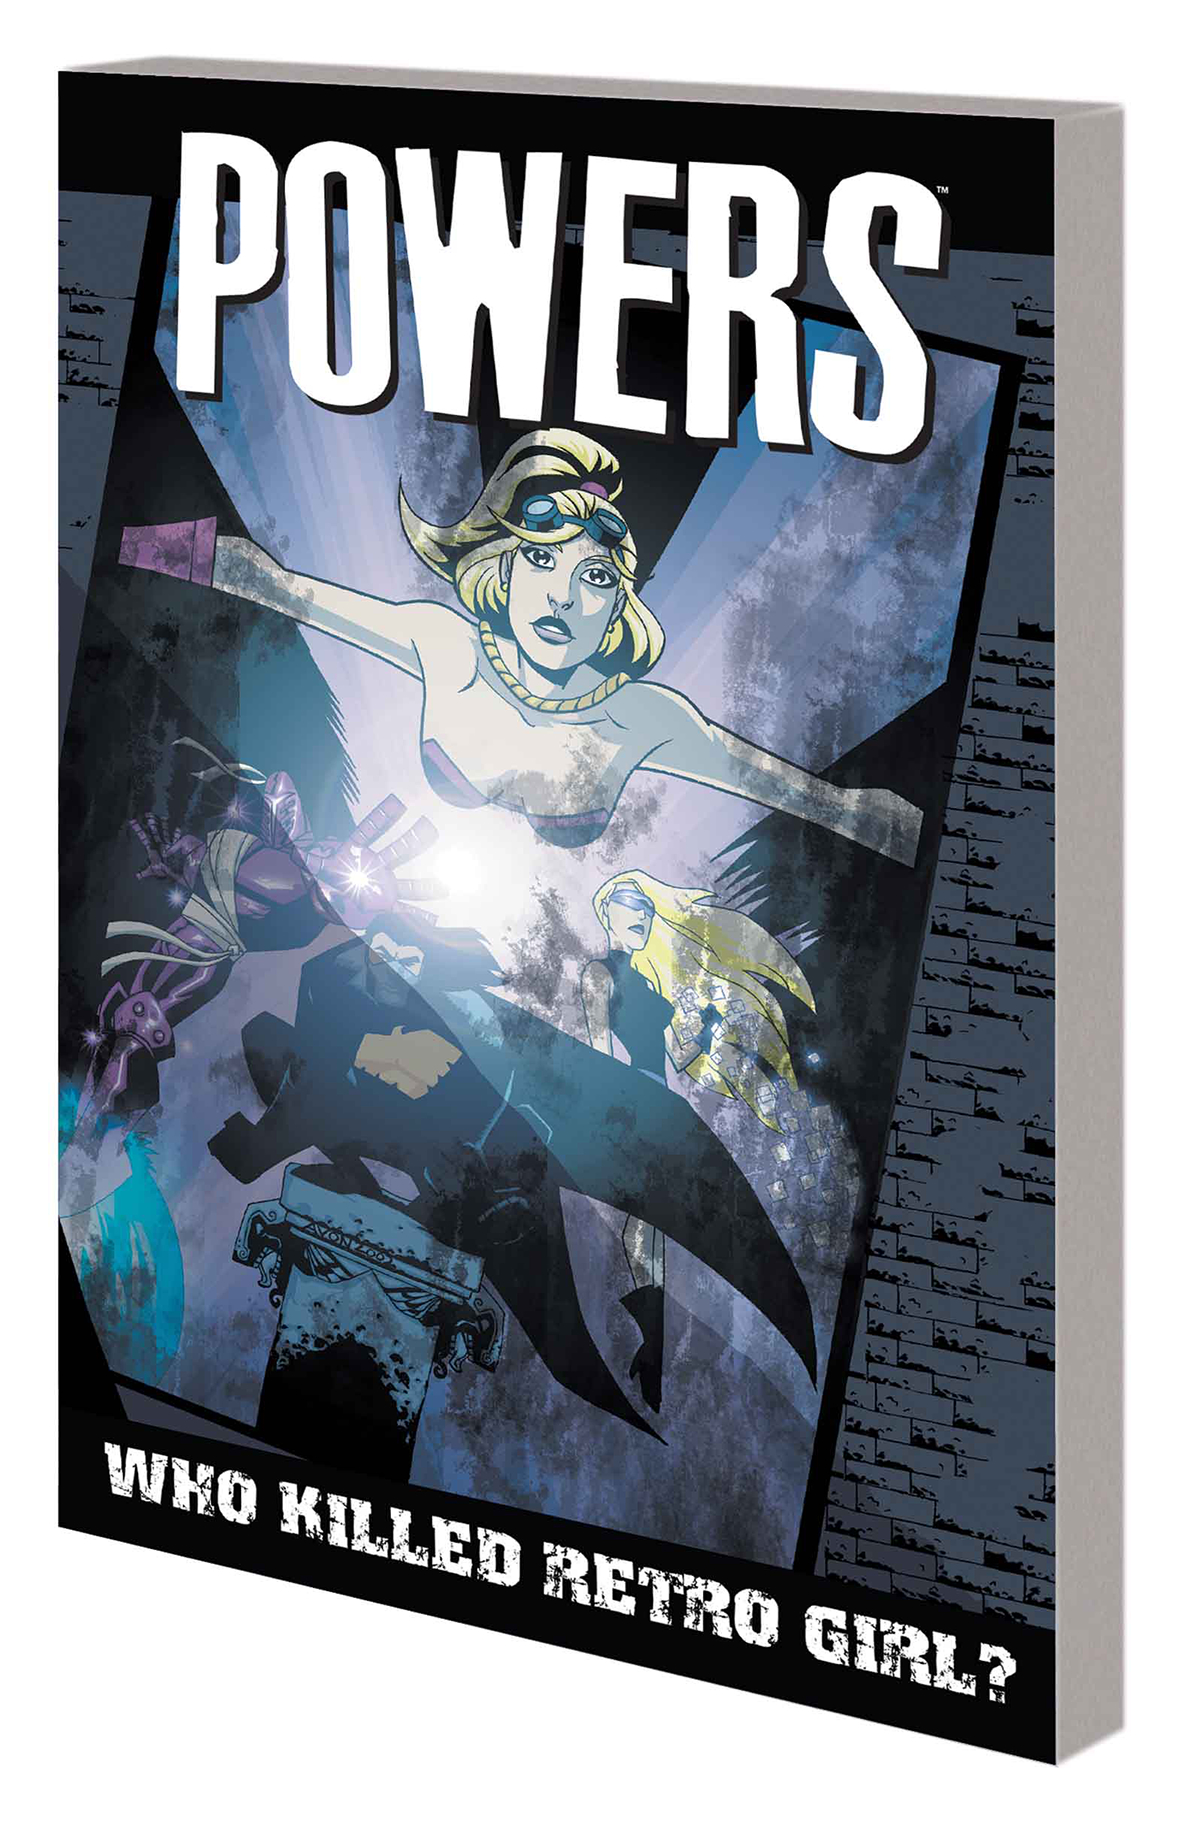 POWERS TP VOL 01 WHO KILLED RETRO GIRL NEW PTG